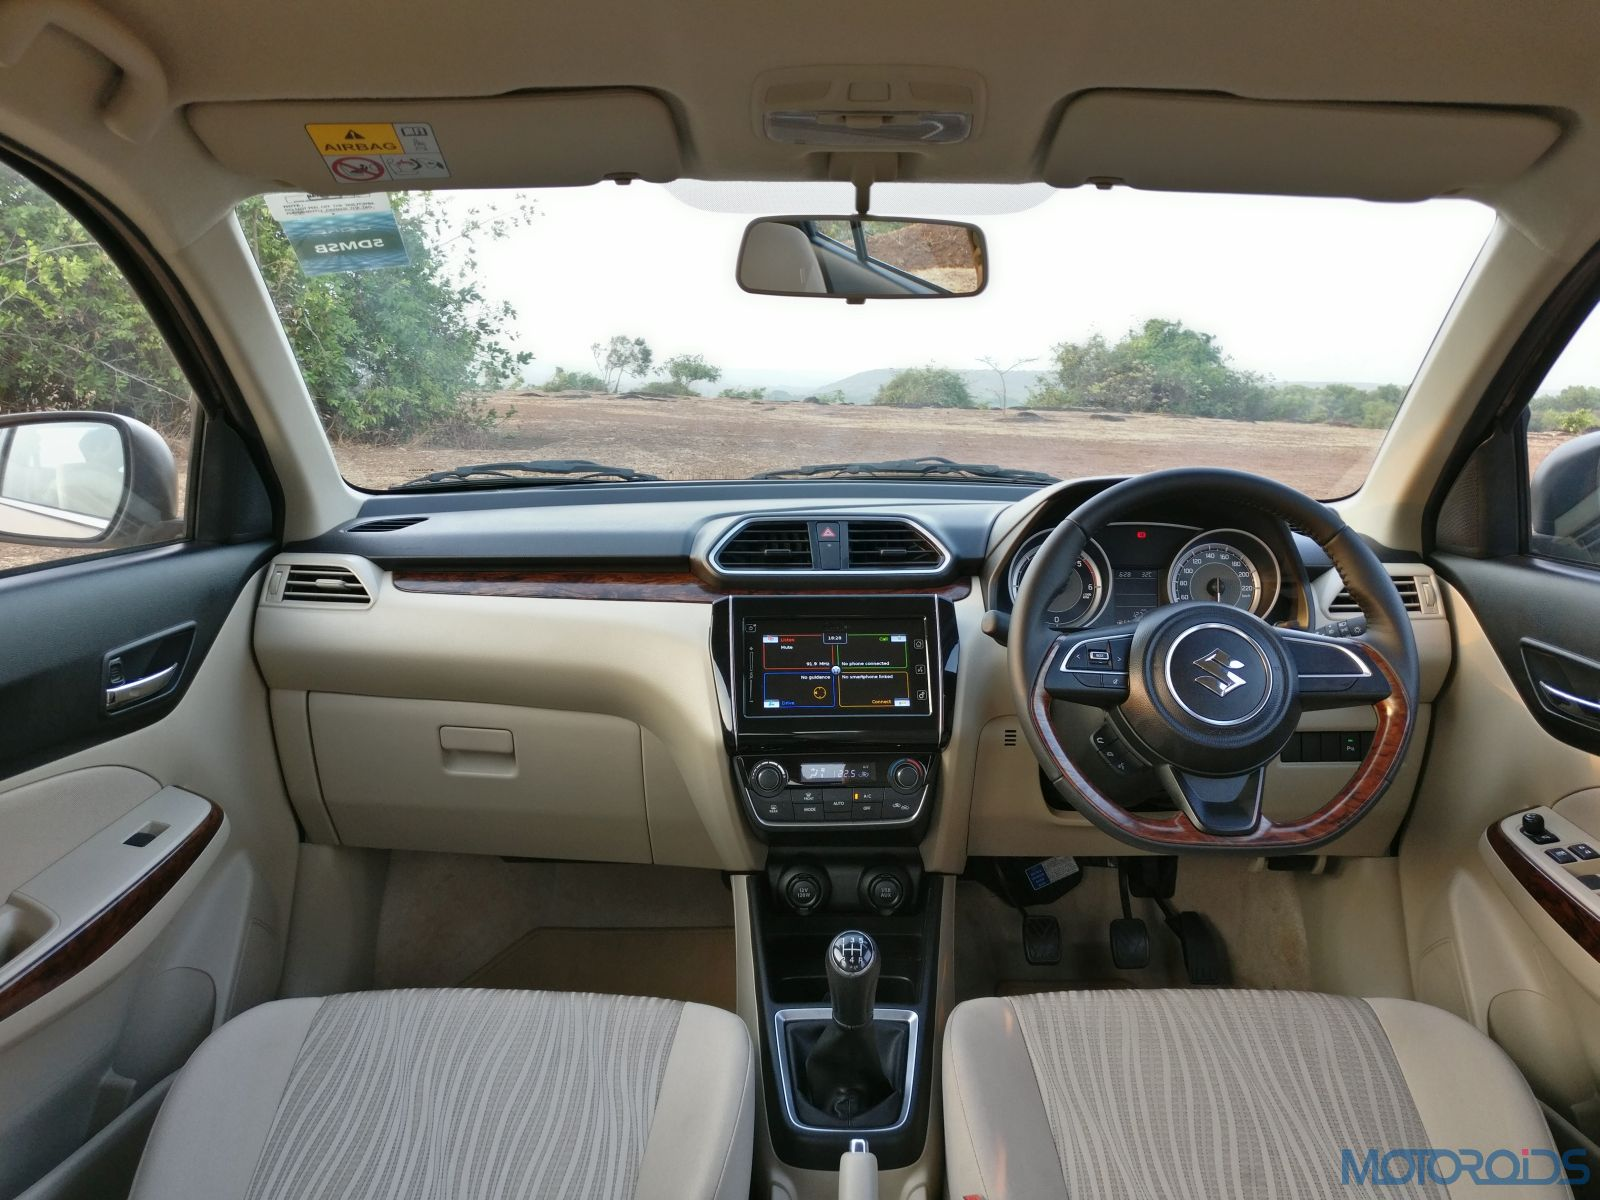 2017 Maruti Dzire Cabin And Dashboard Review